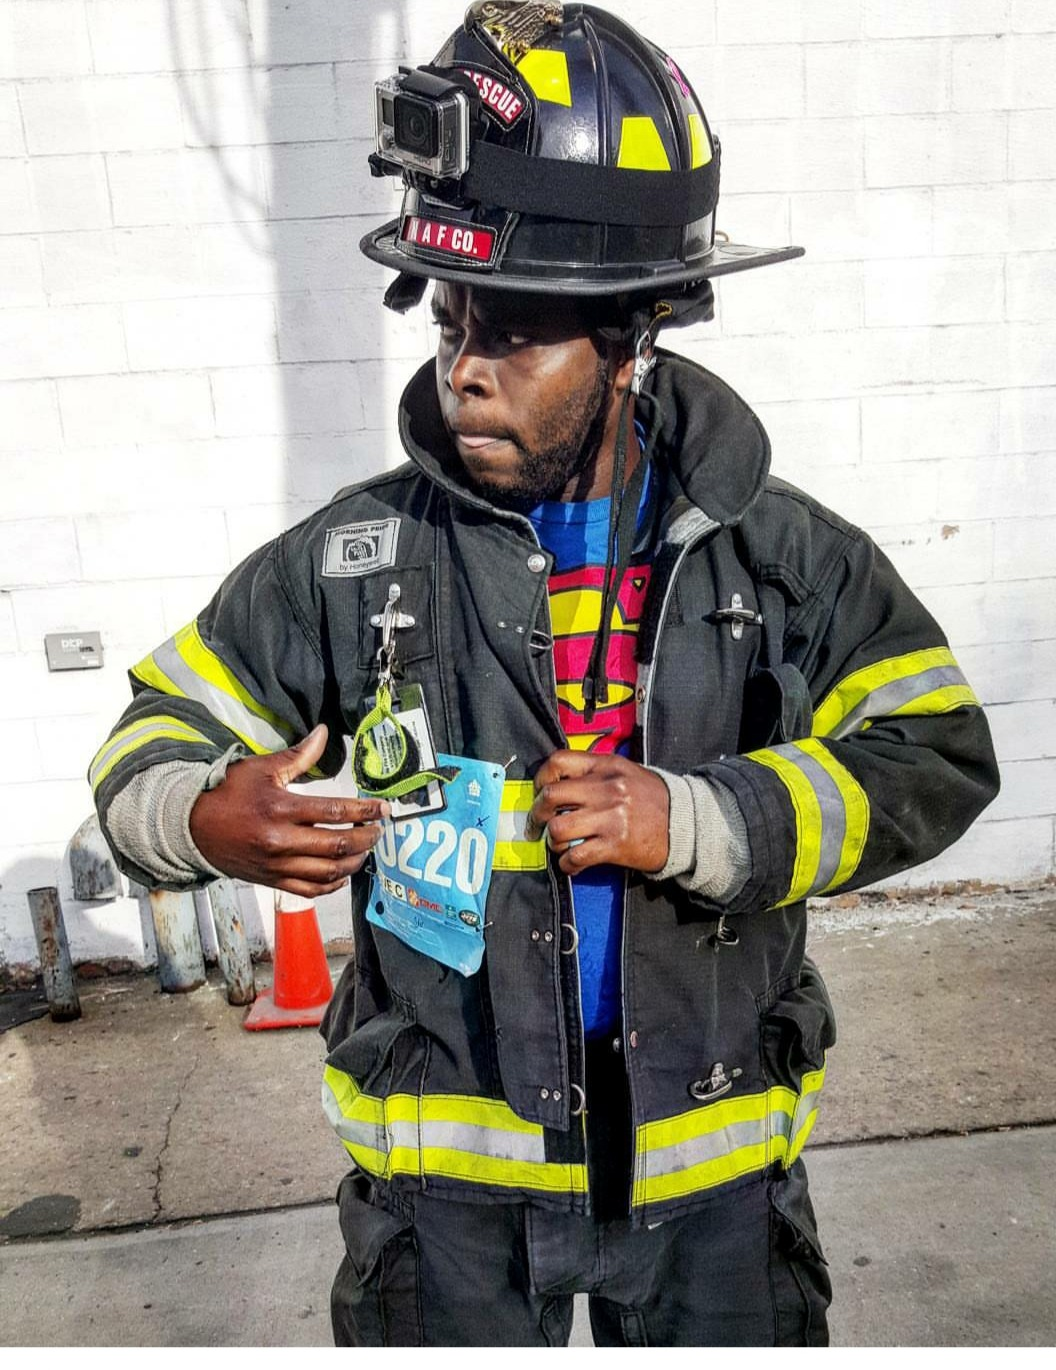 Rhodell in his firefighter uniform revealing a Superman shirt underneath.